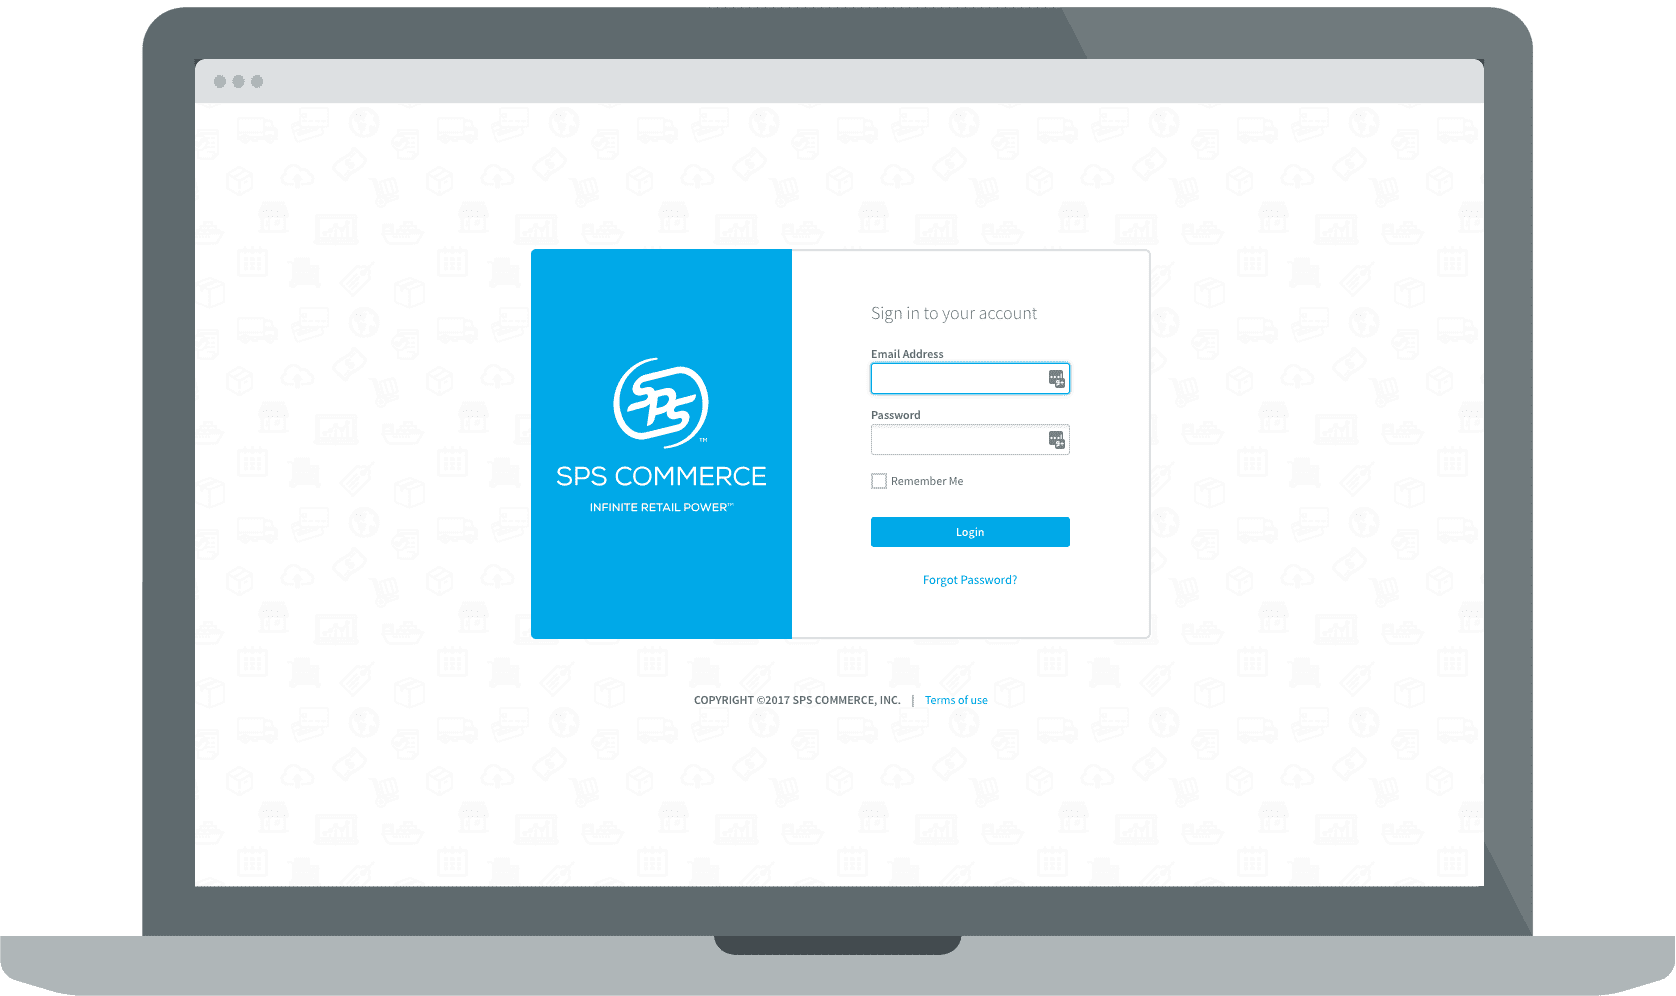 SPS Commerce Login for Fulfillment, Assortment and Community